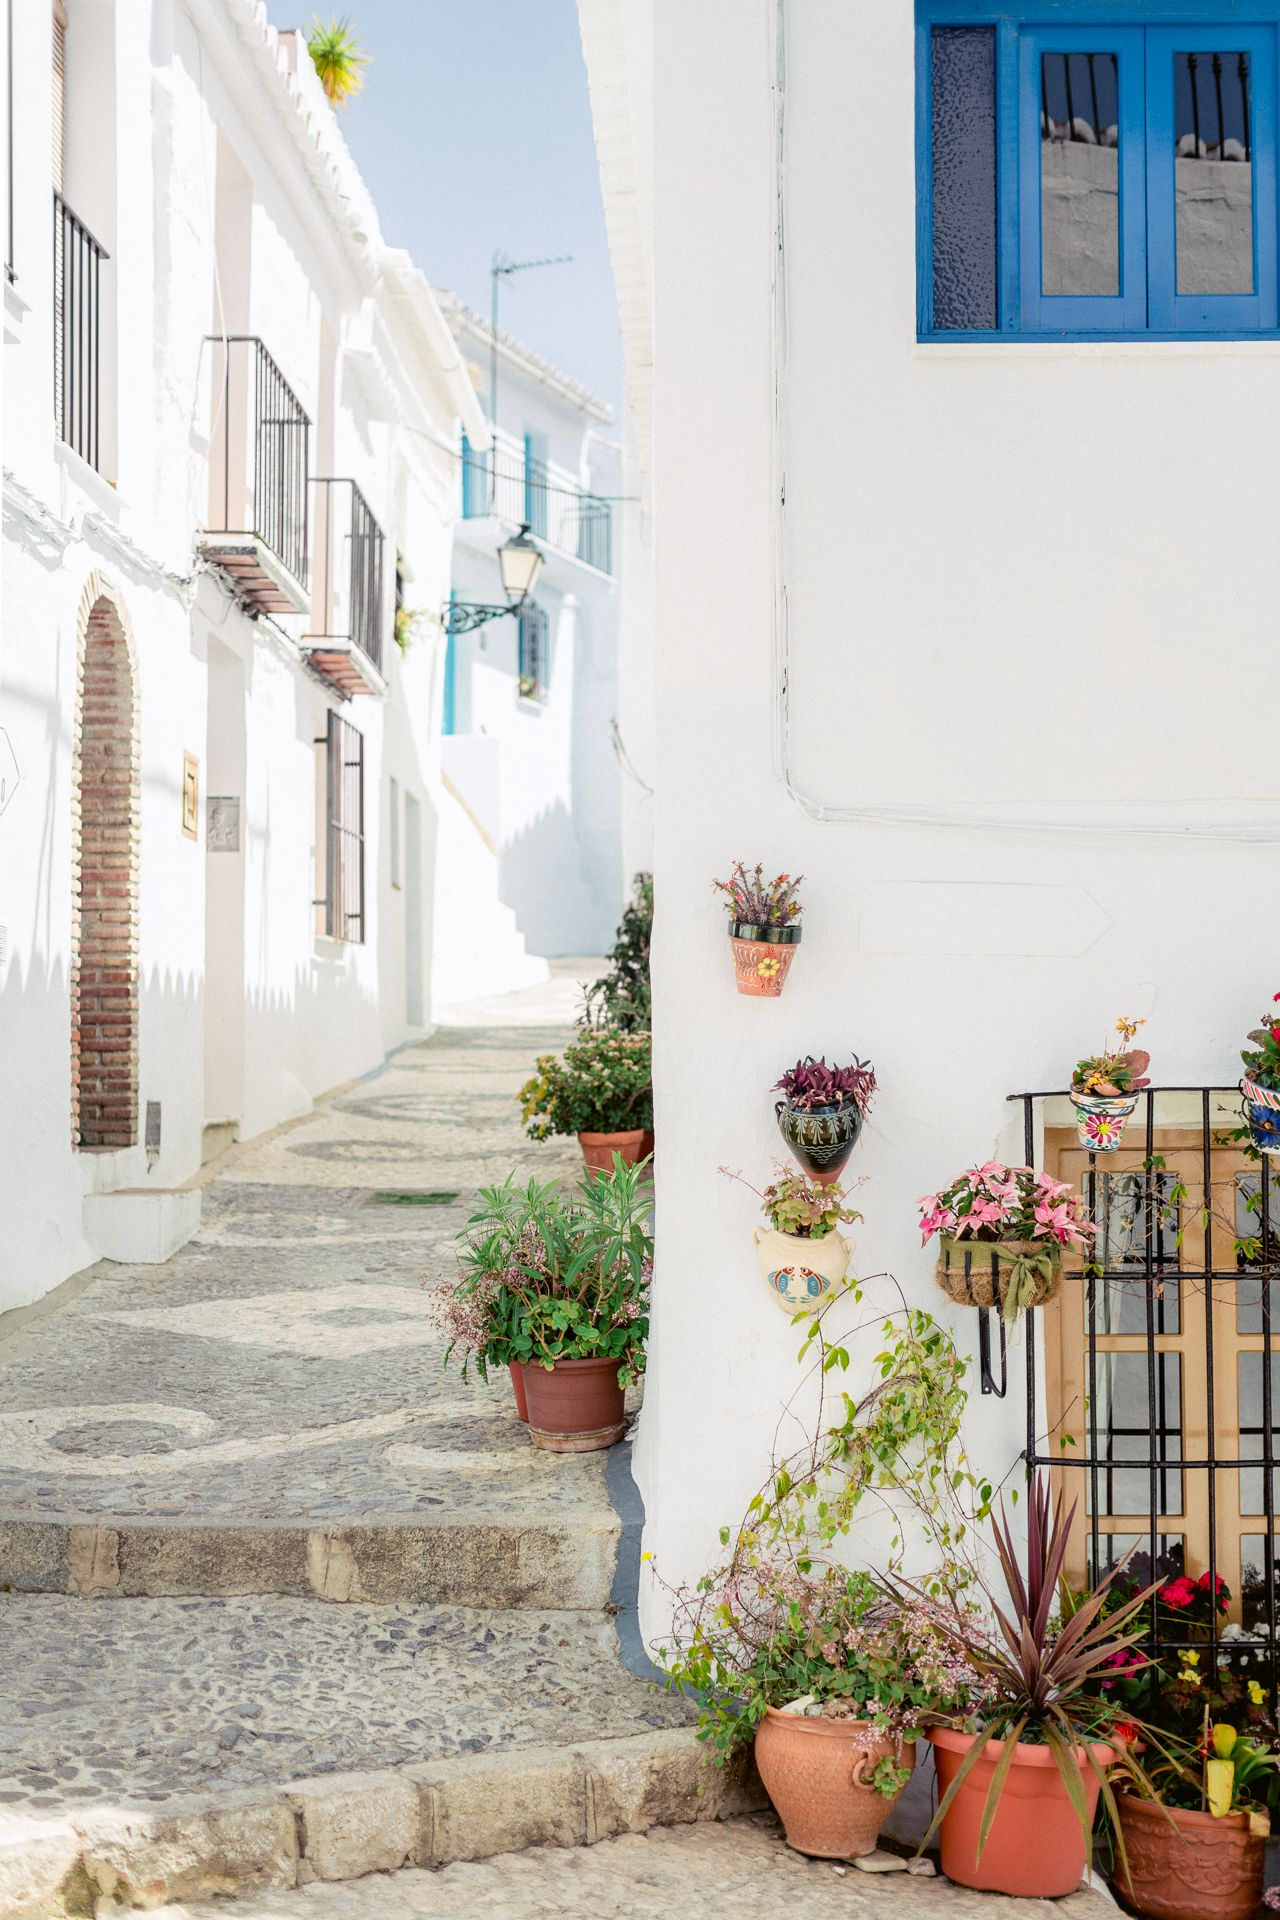 Andalusia, Spain - Martin Lux Tumblr